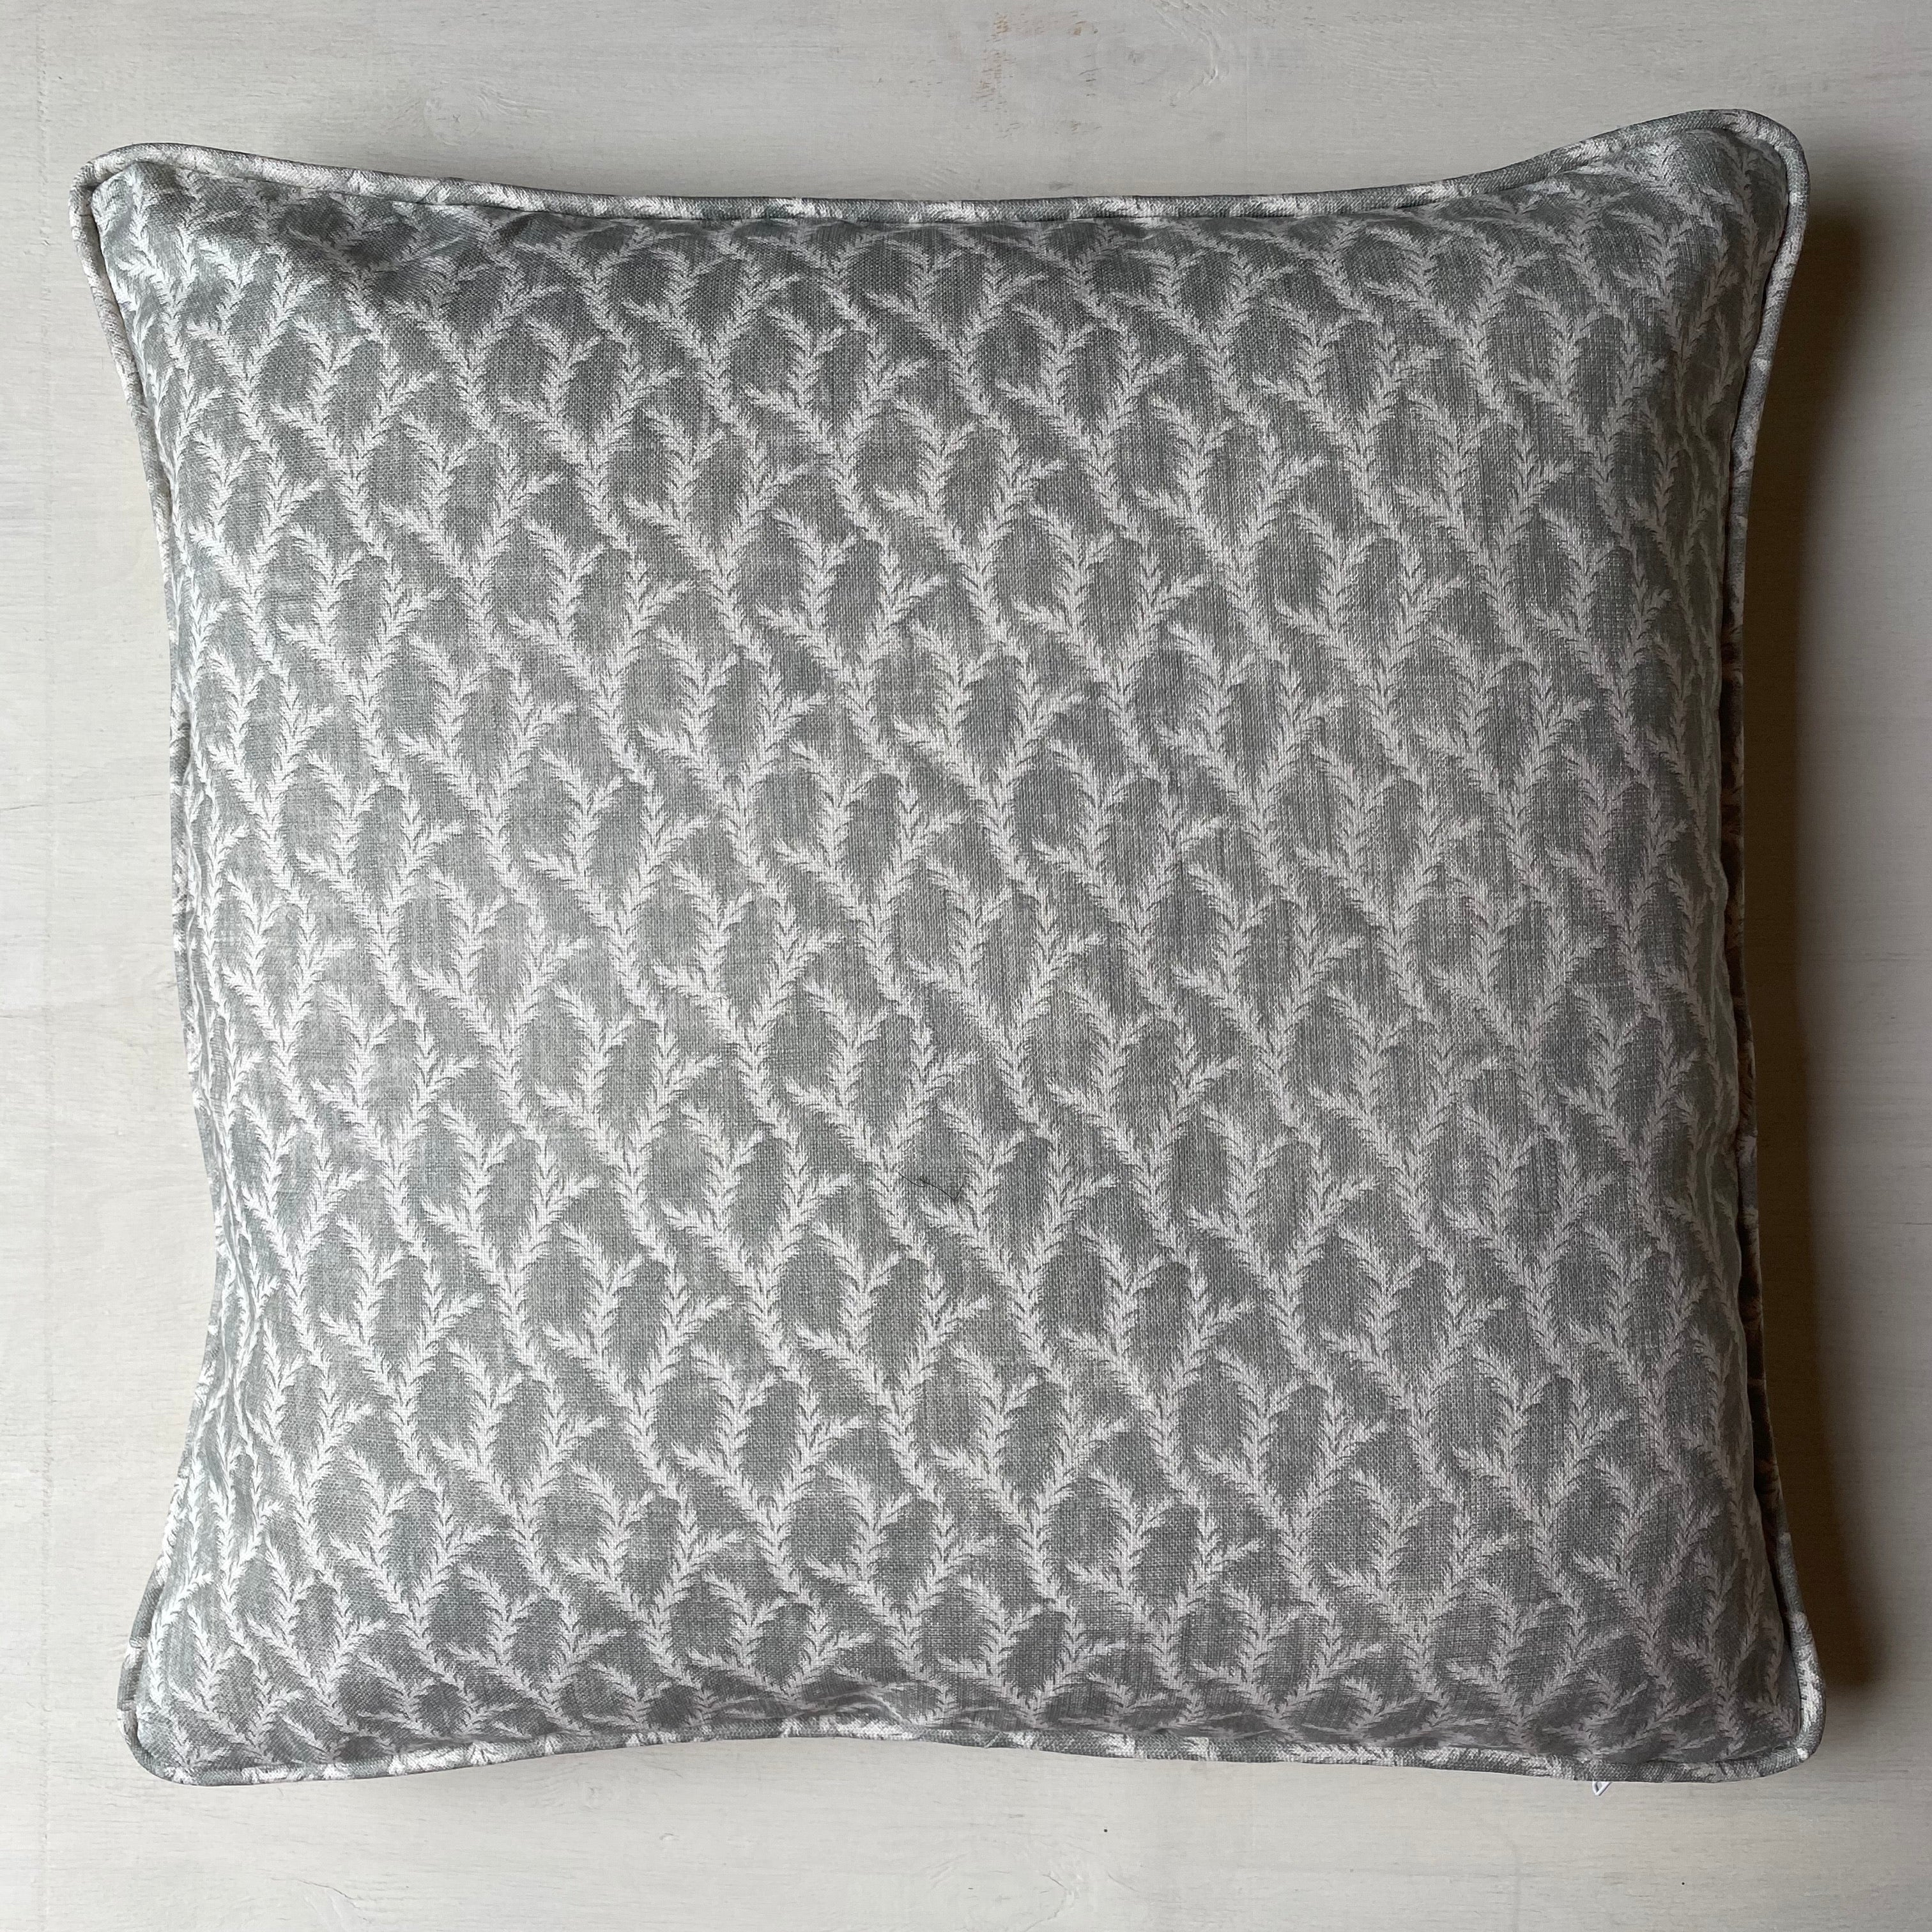 Feathery Vine Cushion - Grey